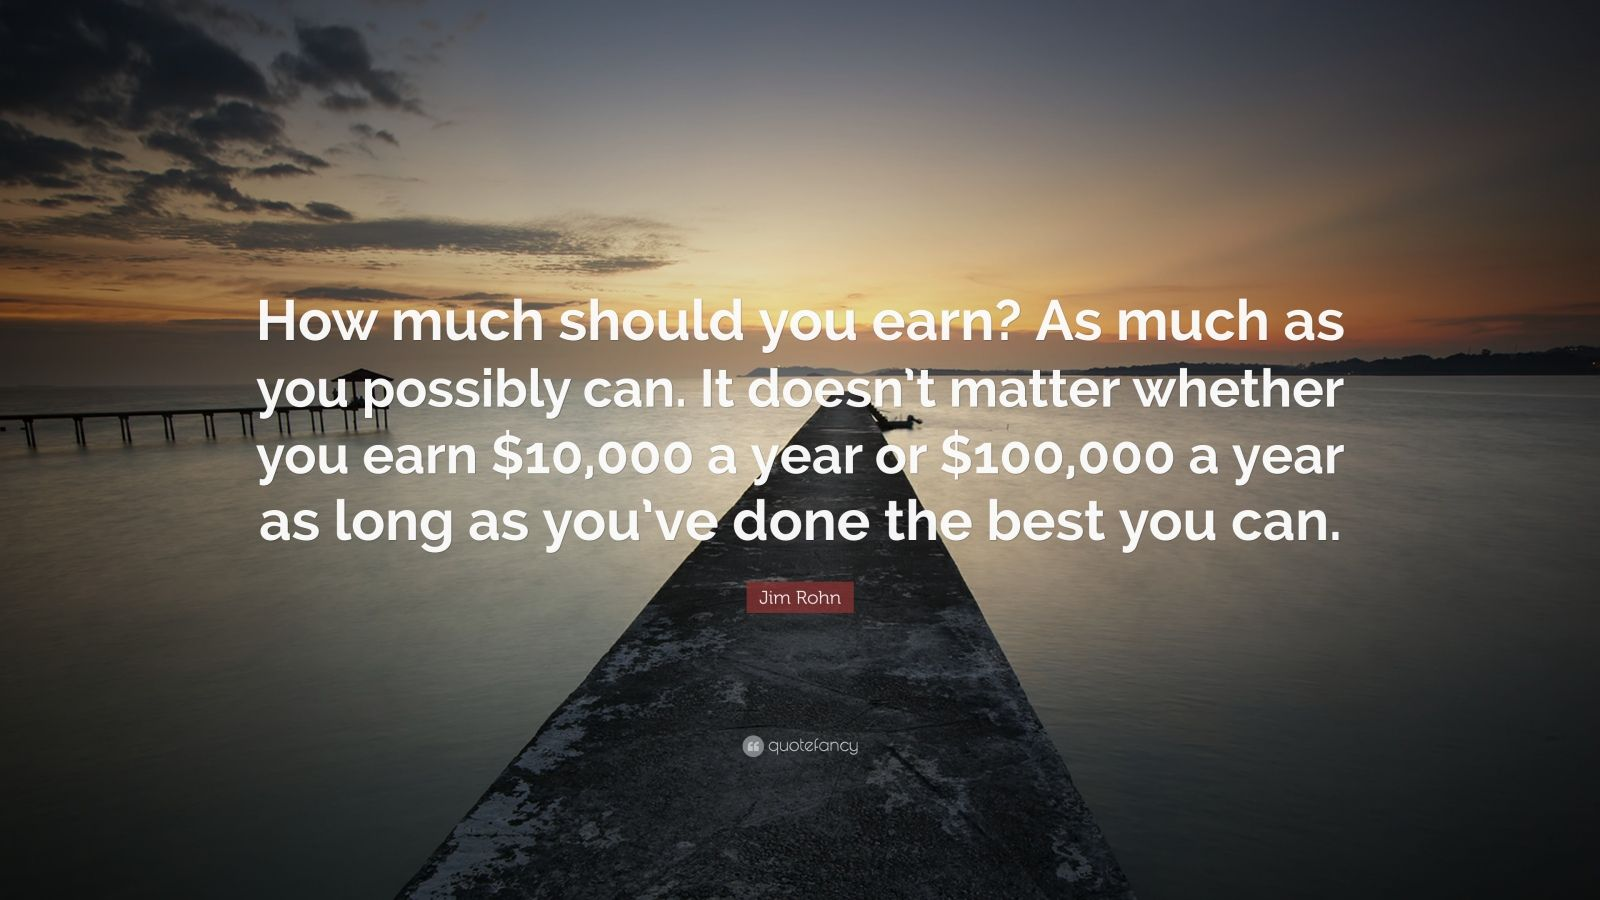 "Jim Rohn Quote: ""How much should you earn? As much as you possibly can. It doesn't matter whether you earn $10,000 a year or $100,000 a year as long as you've done the best you can."""